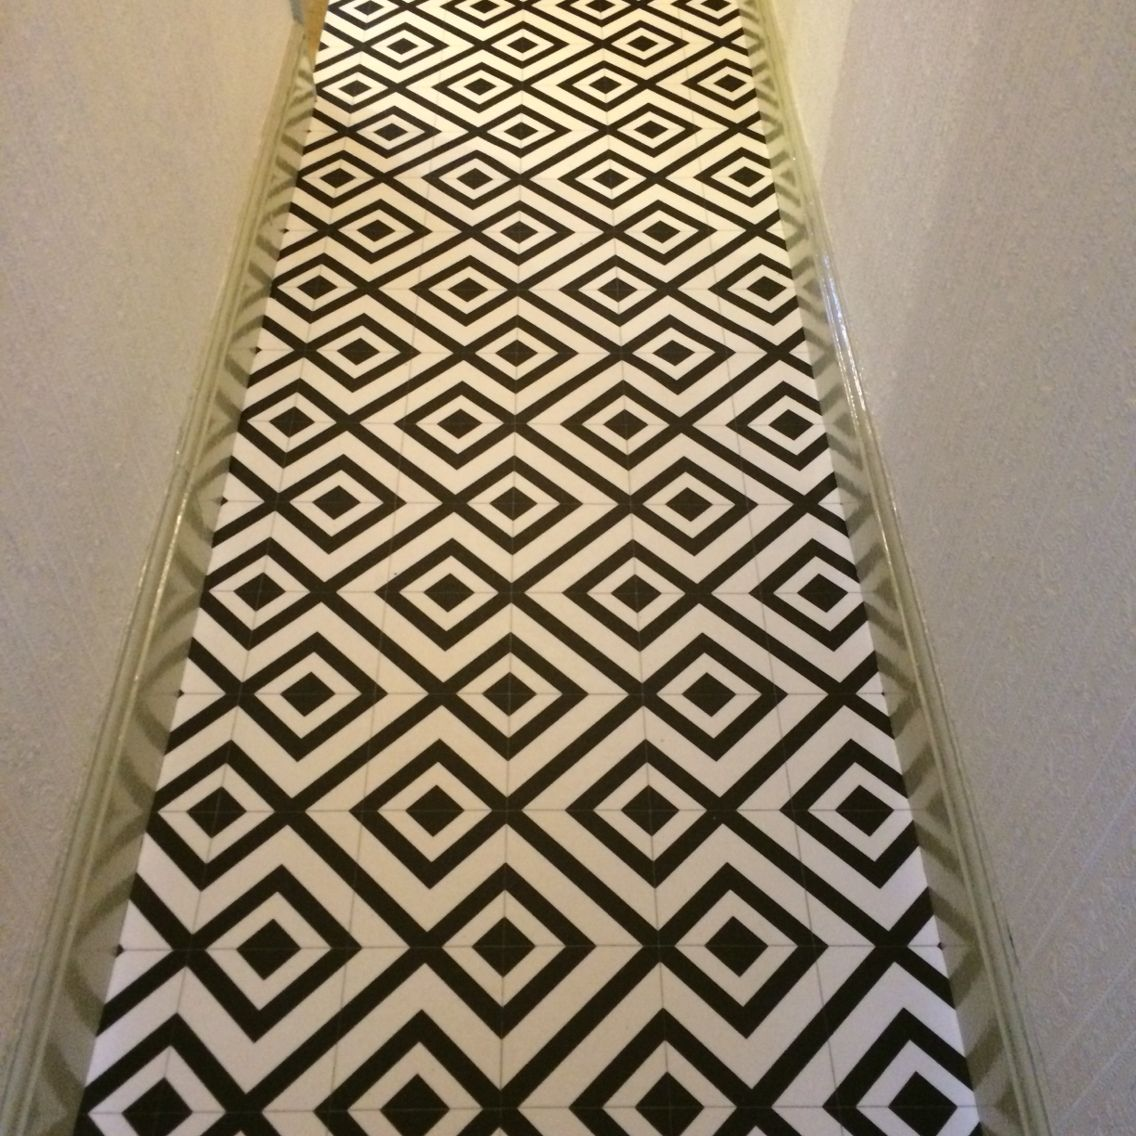 Hard wearing floor covering in the style of victorian floor tiles hard wearing floor covering in the style of victorian floor tiles looks amazing so dailygadgetfo Choice Image